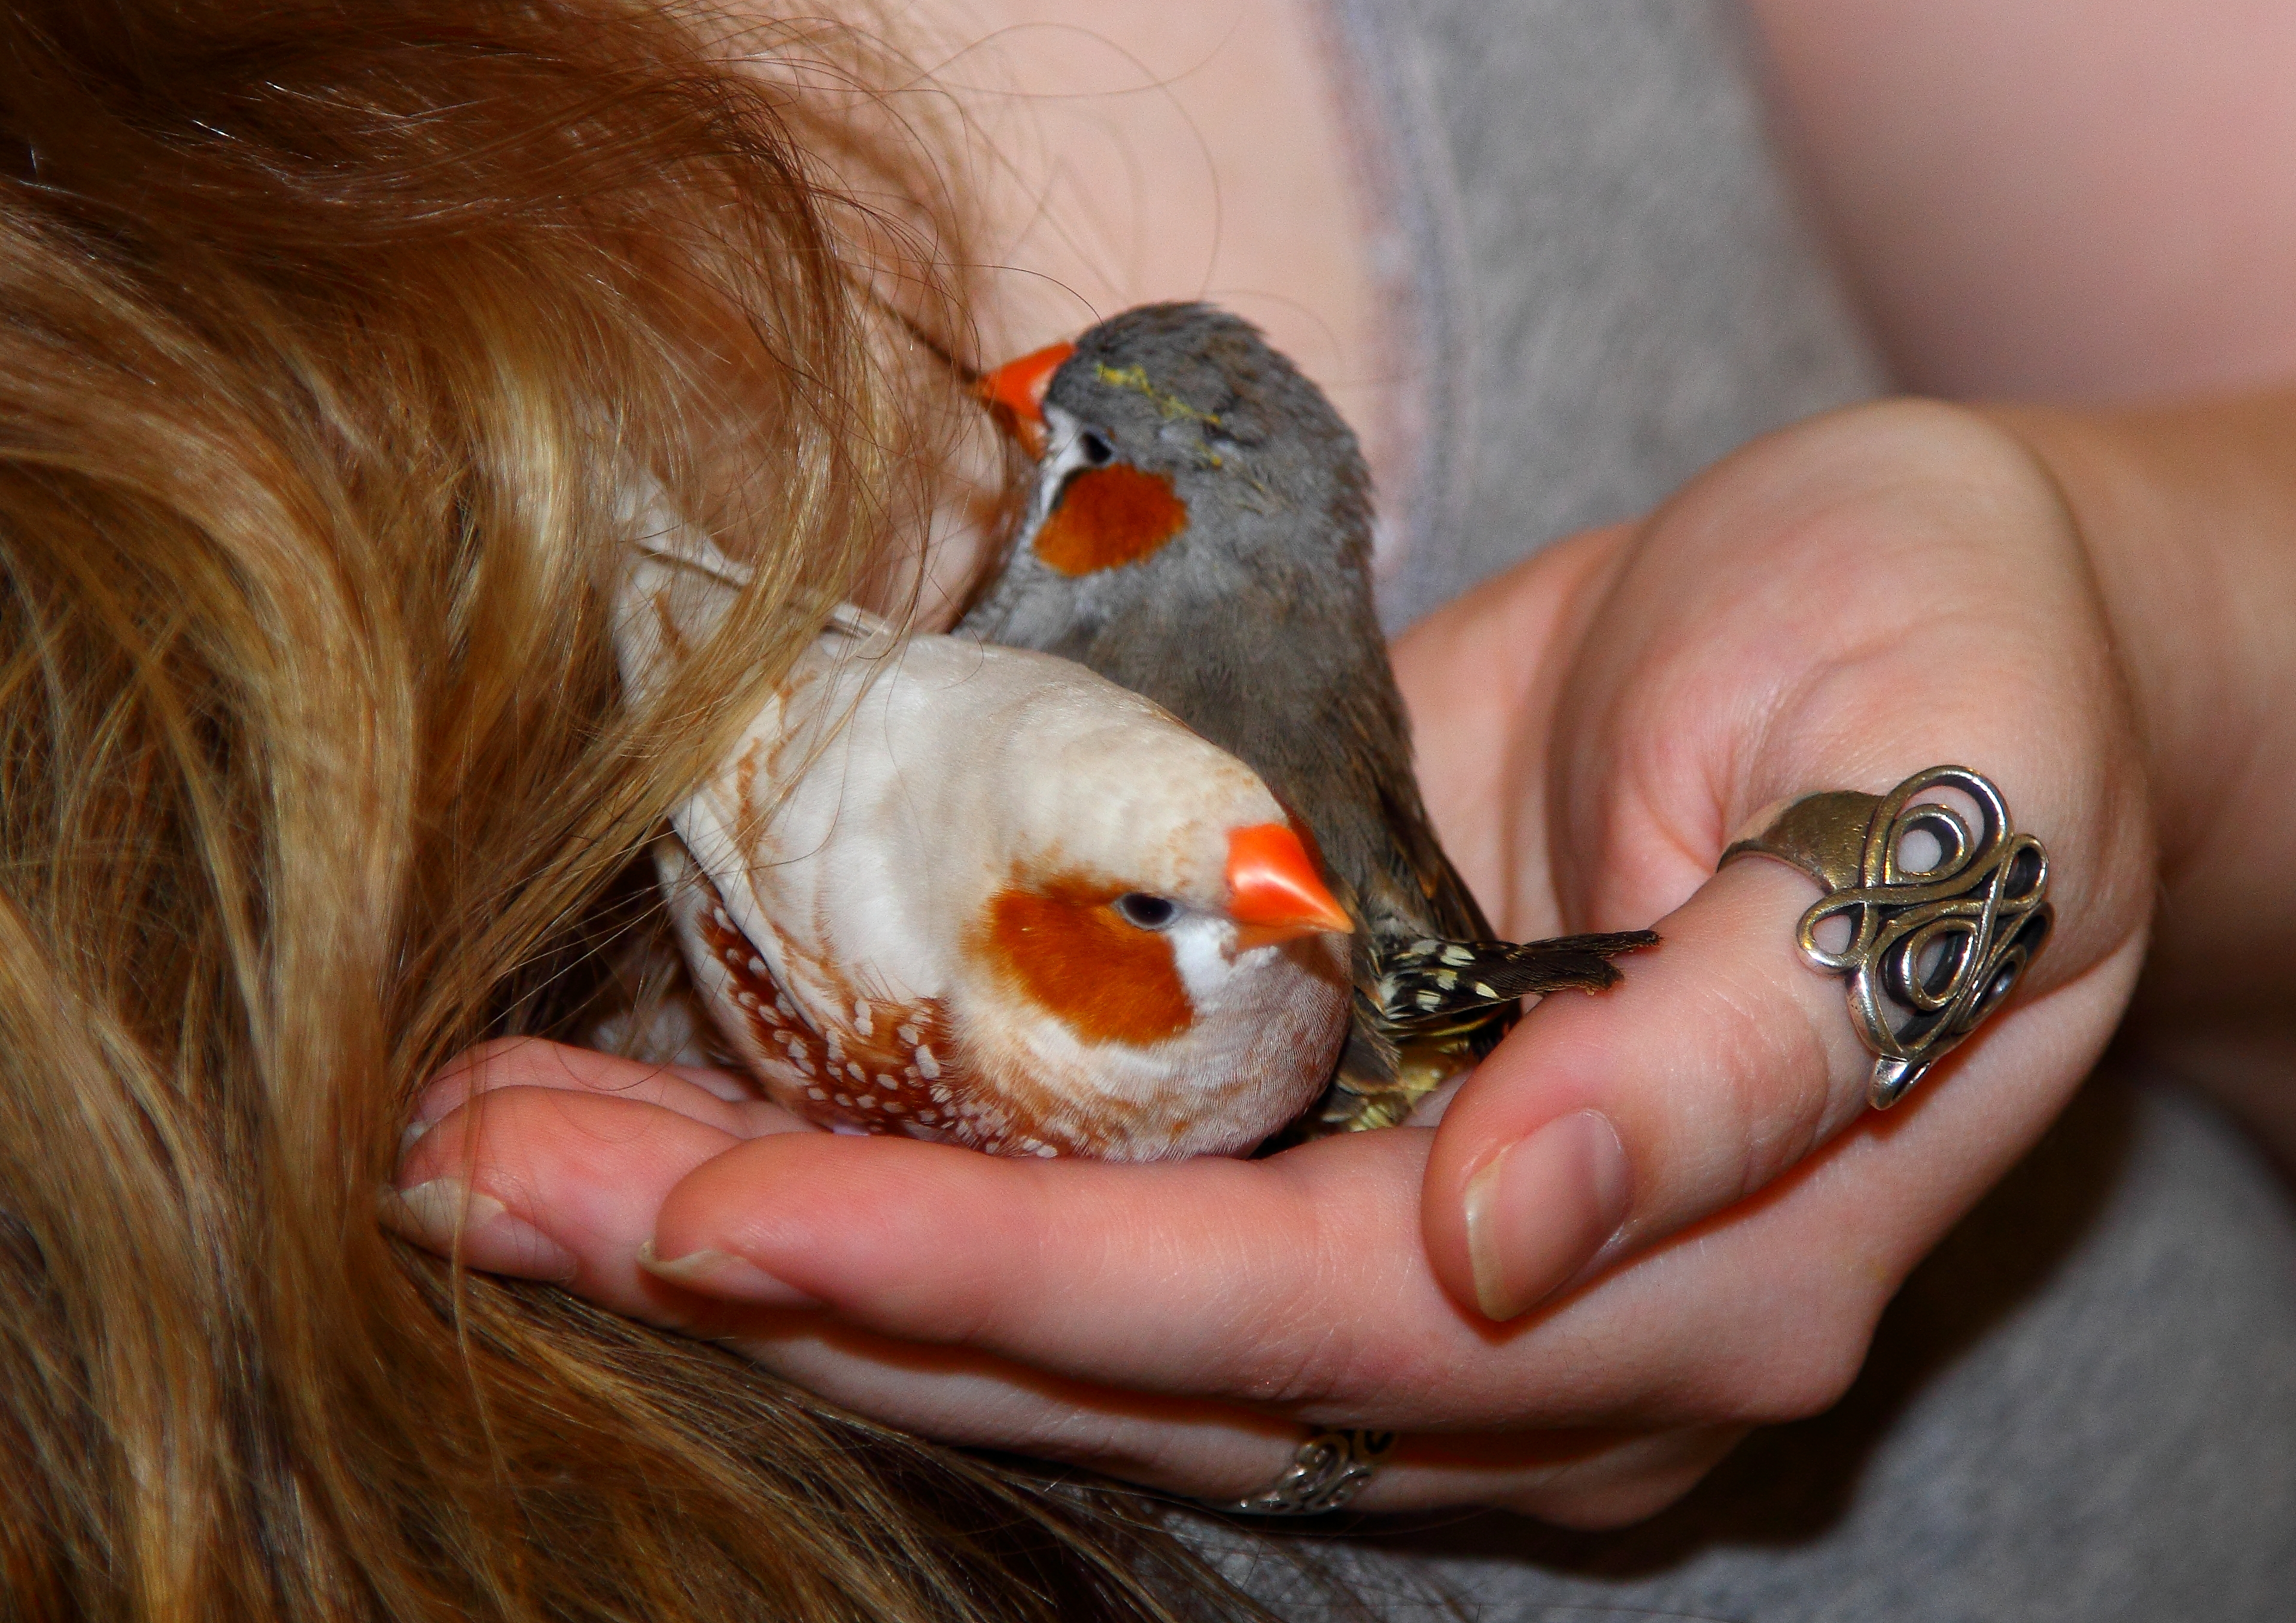 About Me & TWFA | The White Finch Aviary